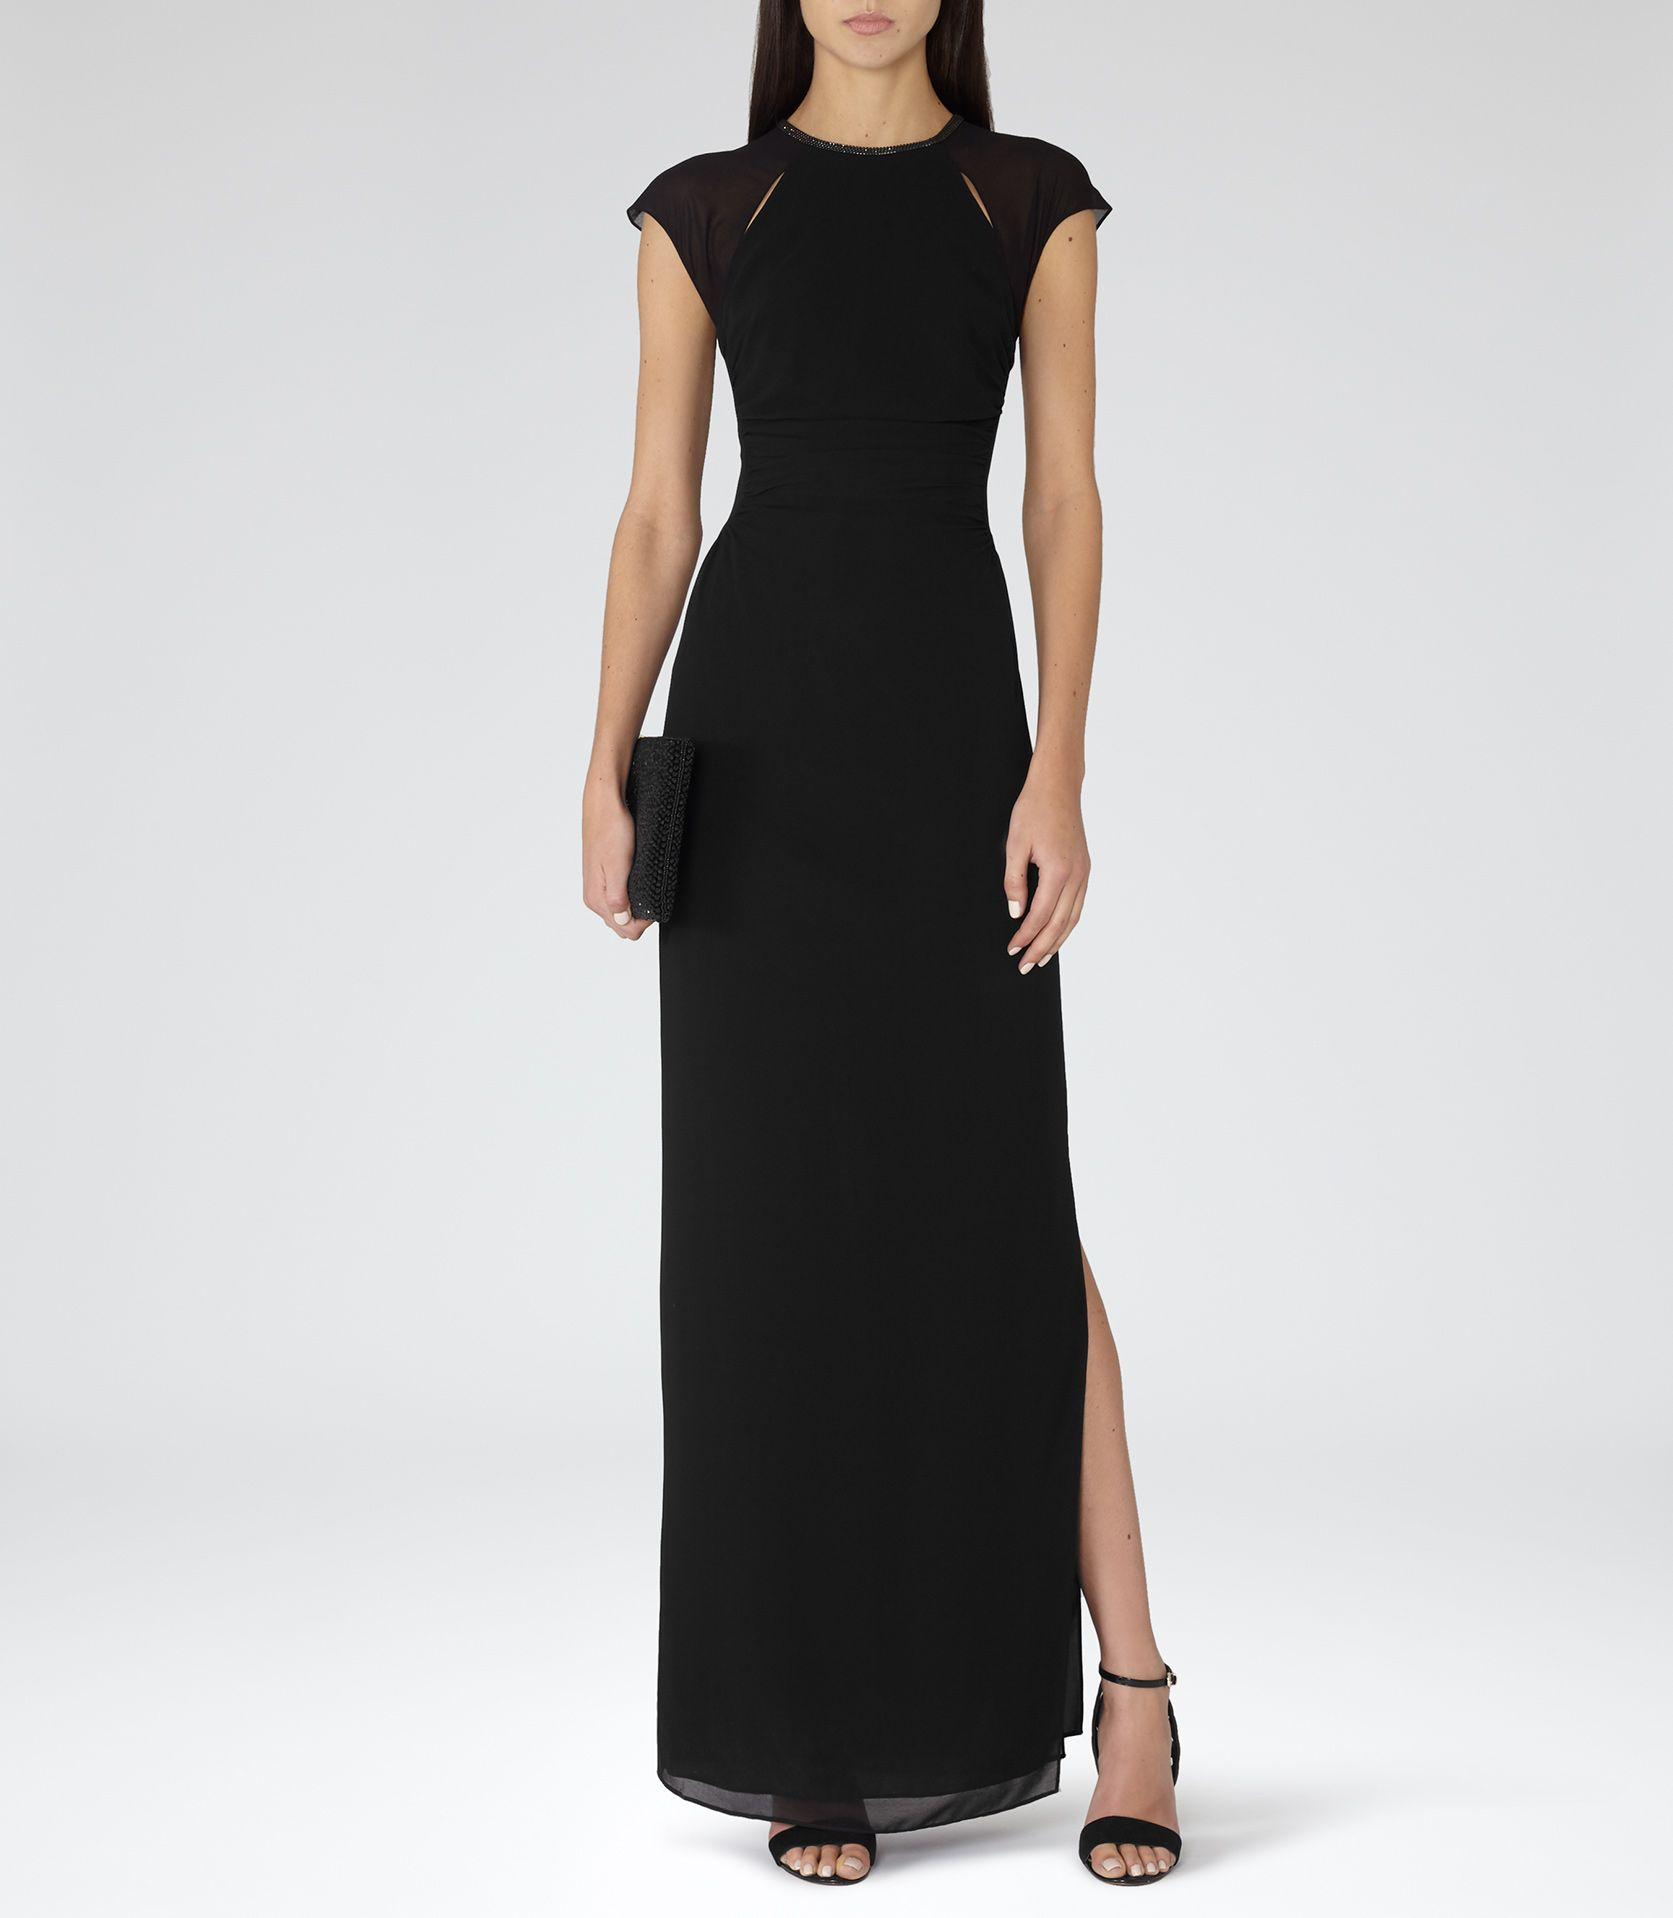 Womens Black Embellished Maxi Dress - Reiss Alondra | Coverings ...